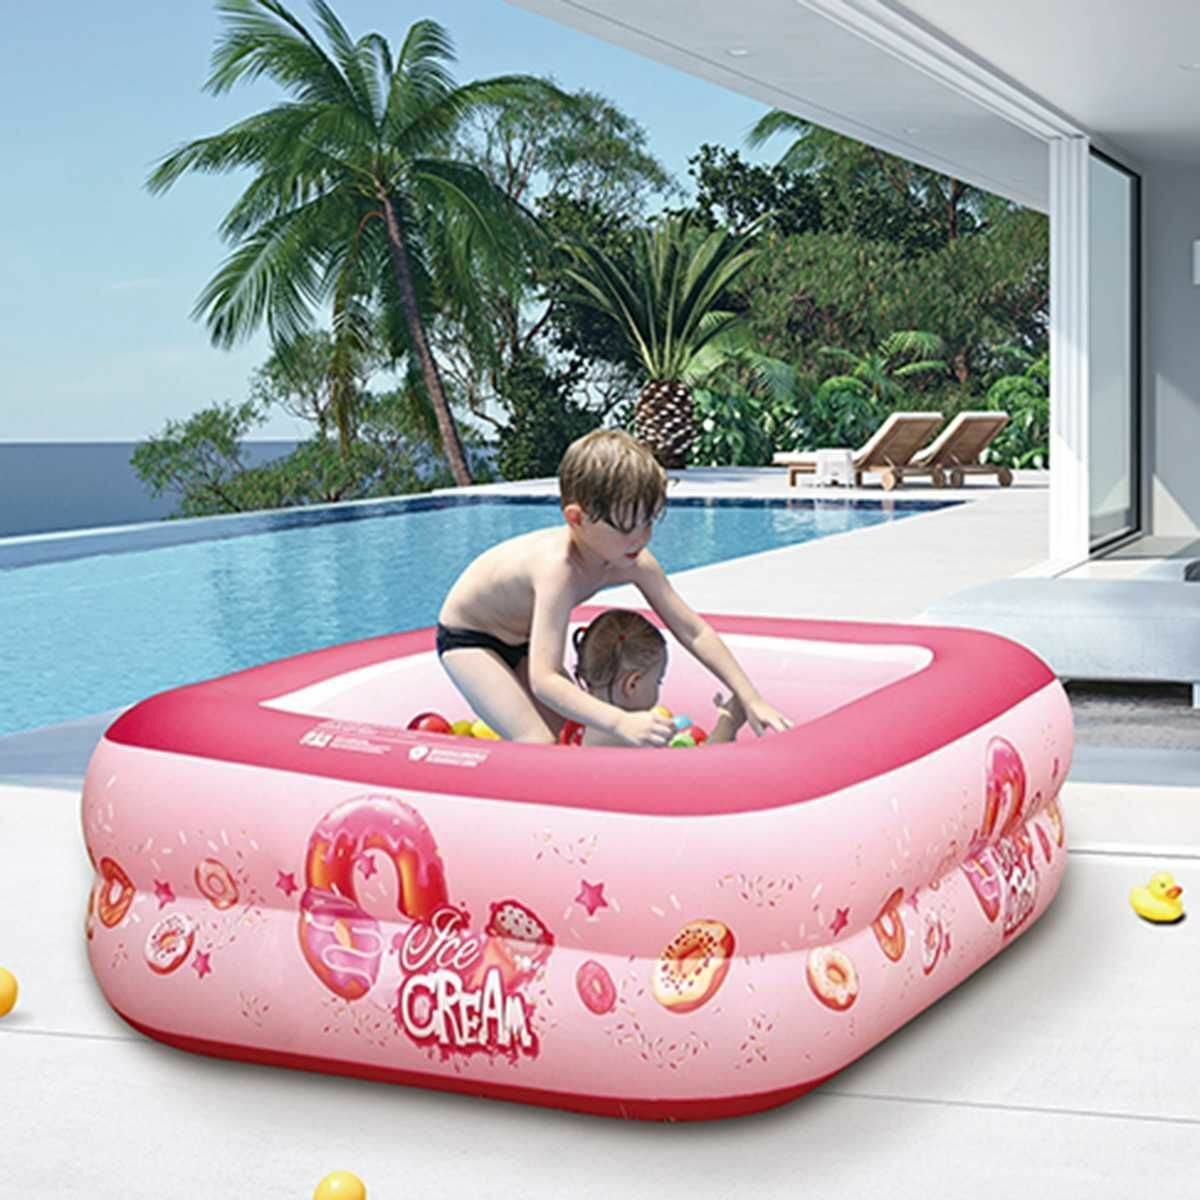 Children Inflatable Swimming Pool Baby Water Play Portable Outdoor Basin Bathtub